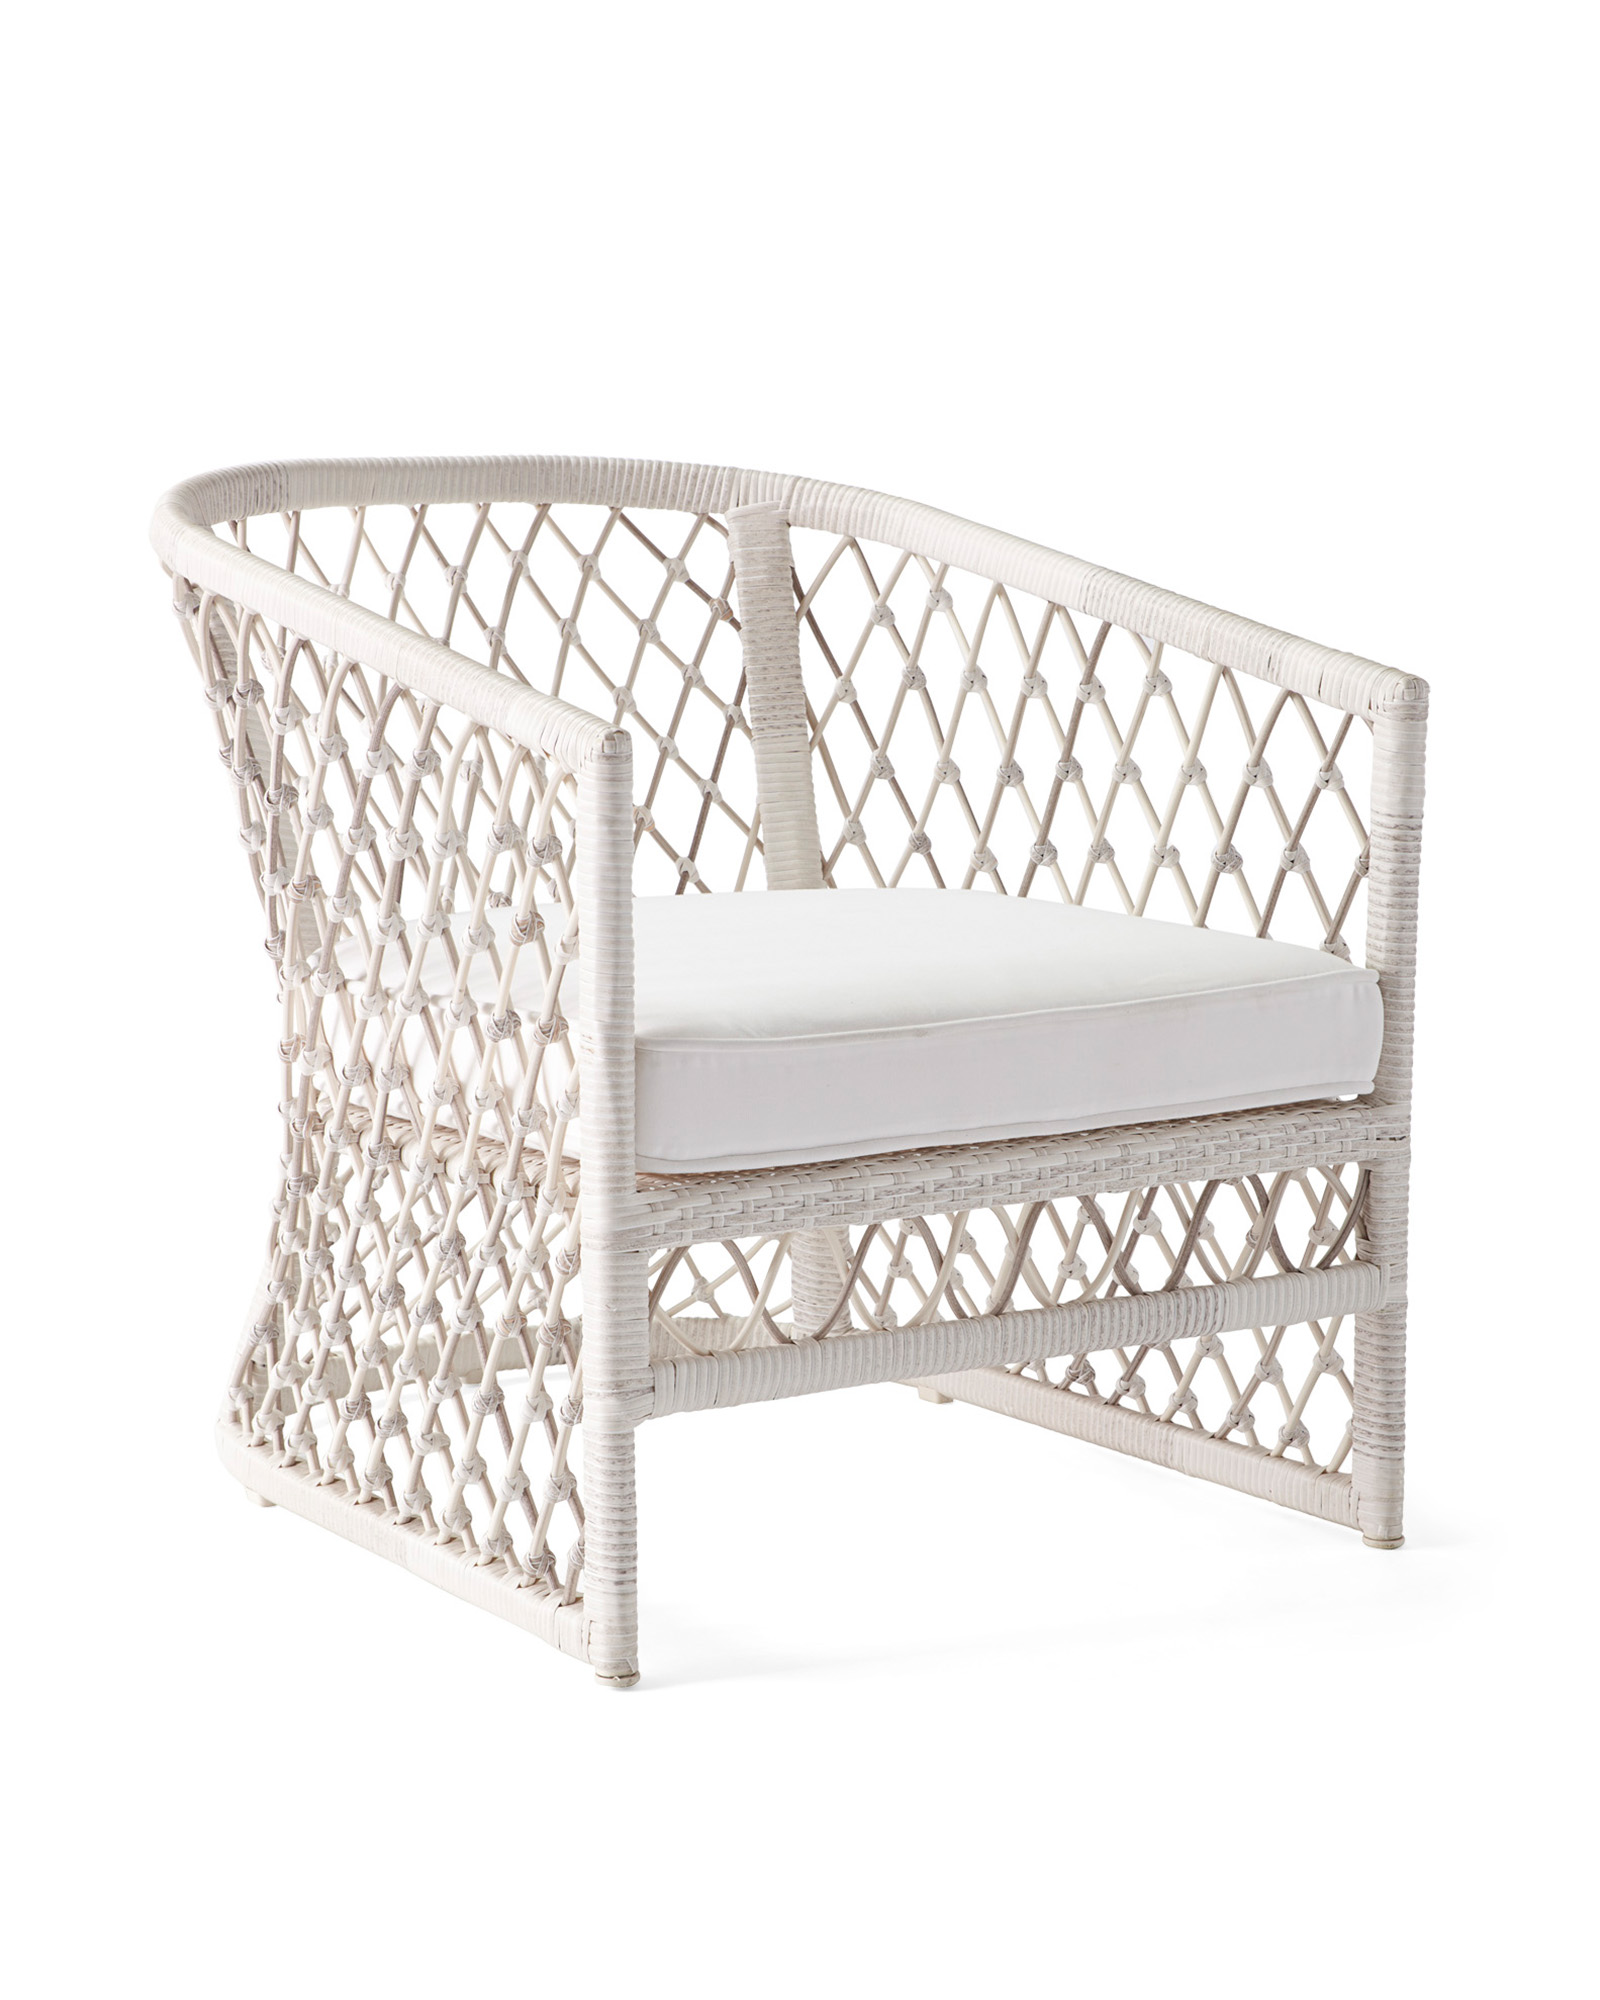 Capistrano outdoor lounge chair - Serena & Lily